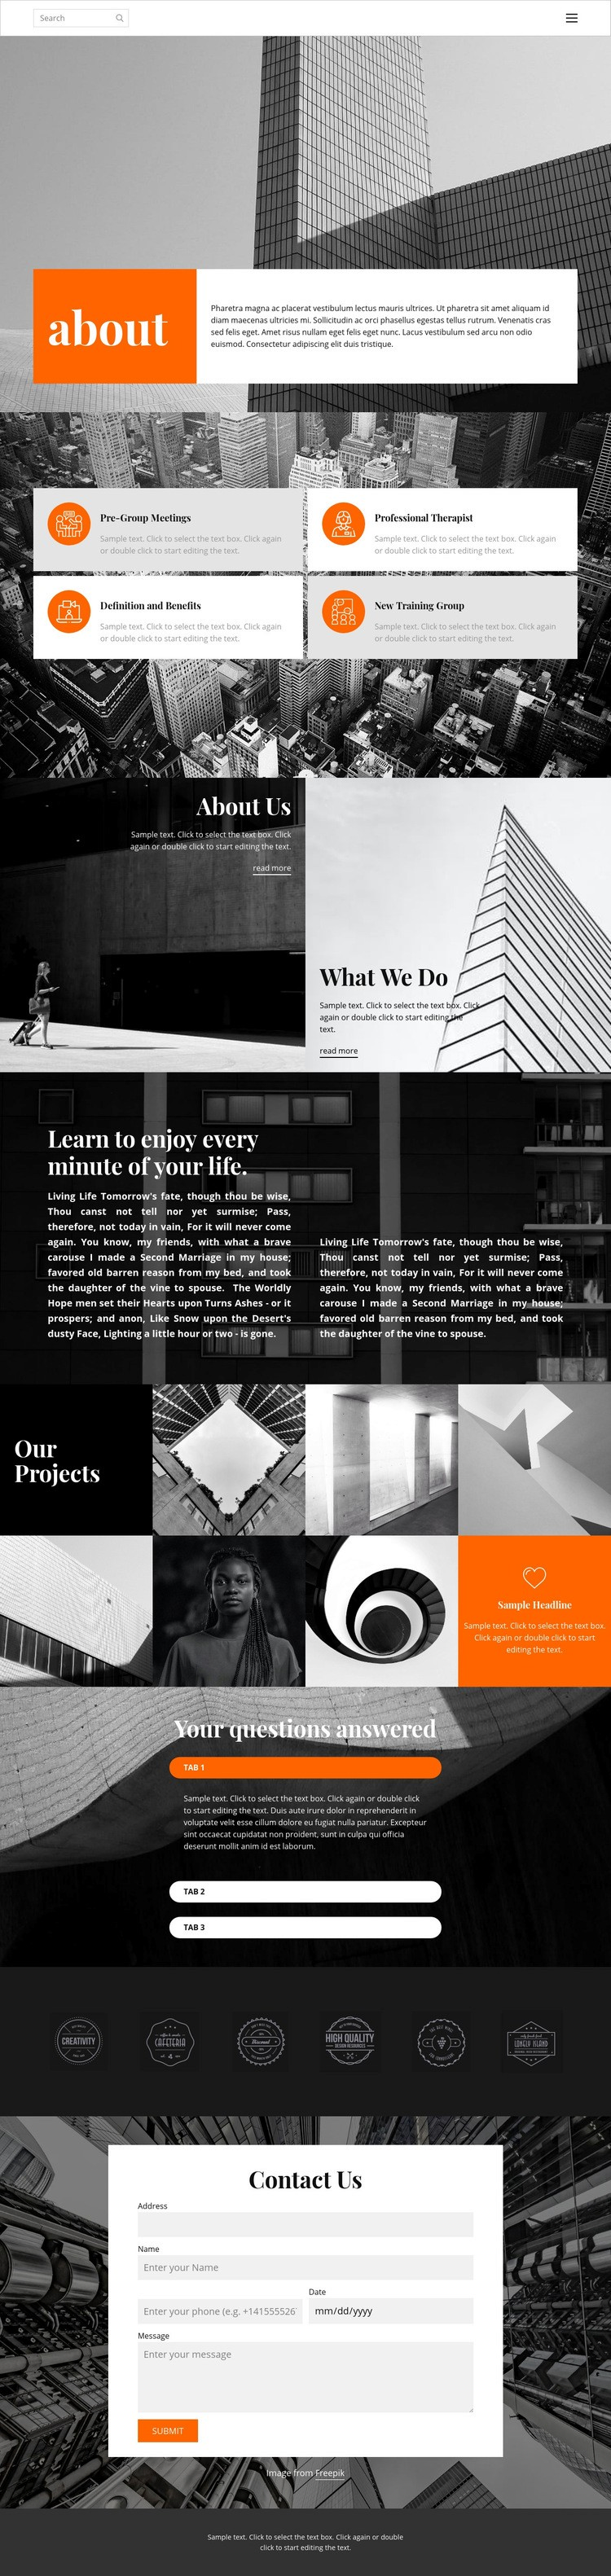 New projects studio Web Page Designer